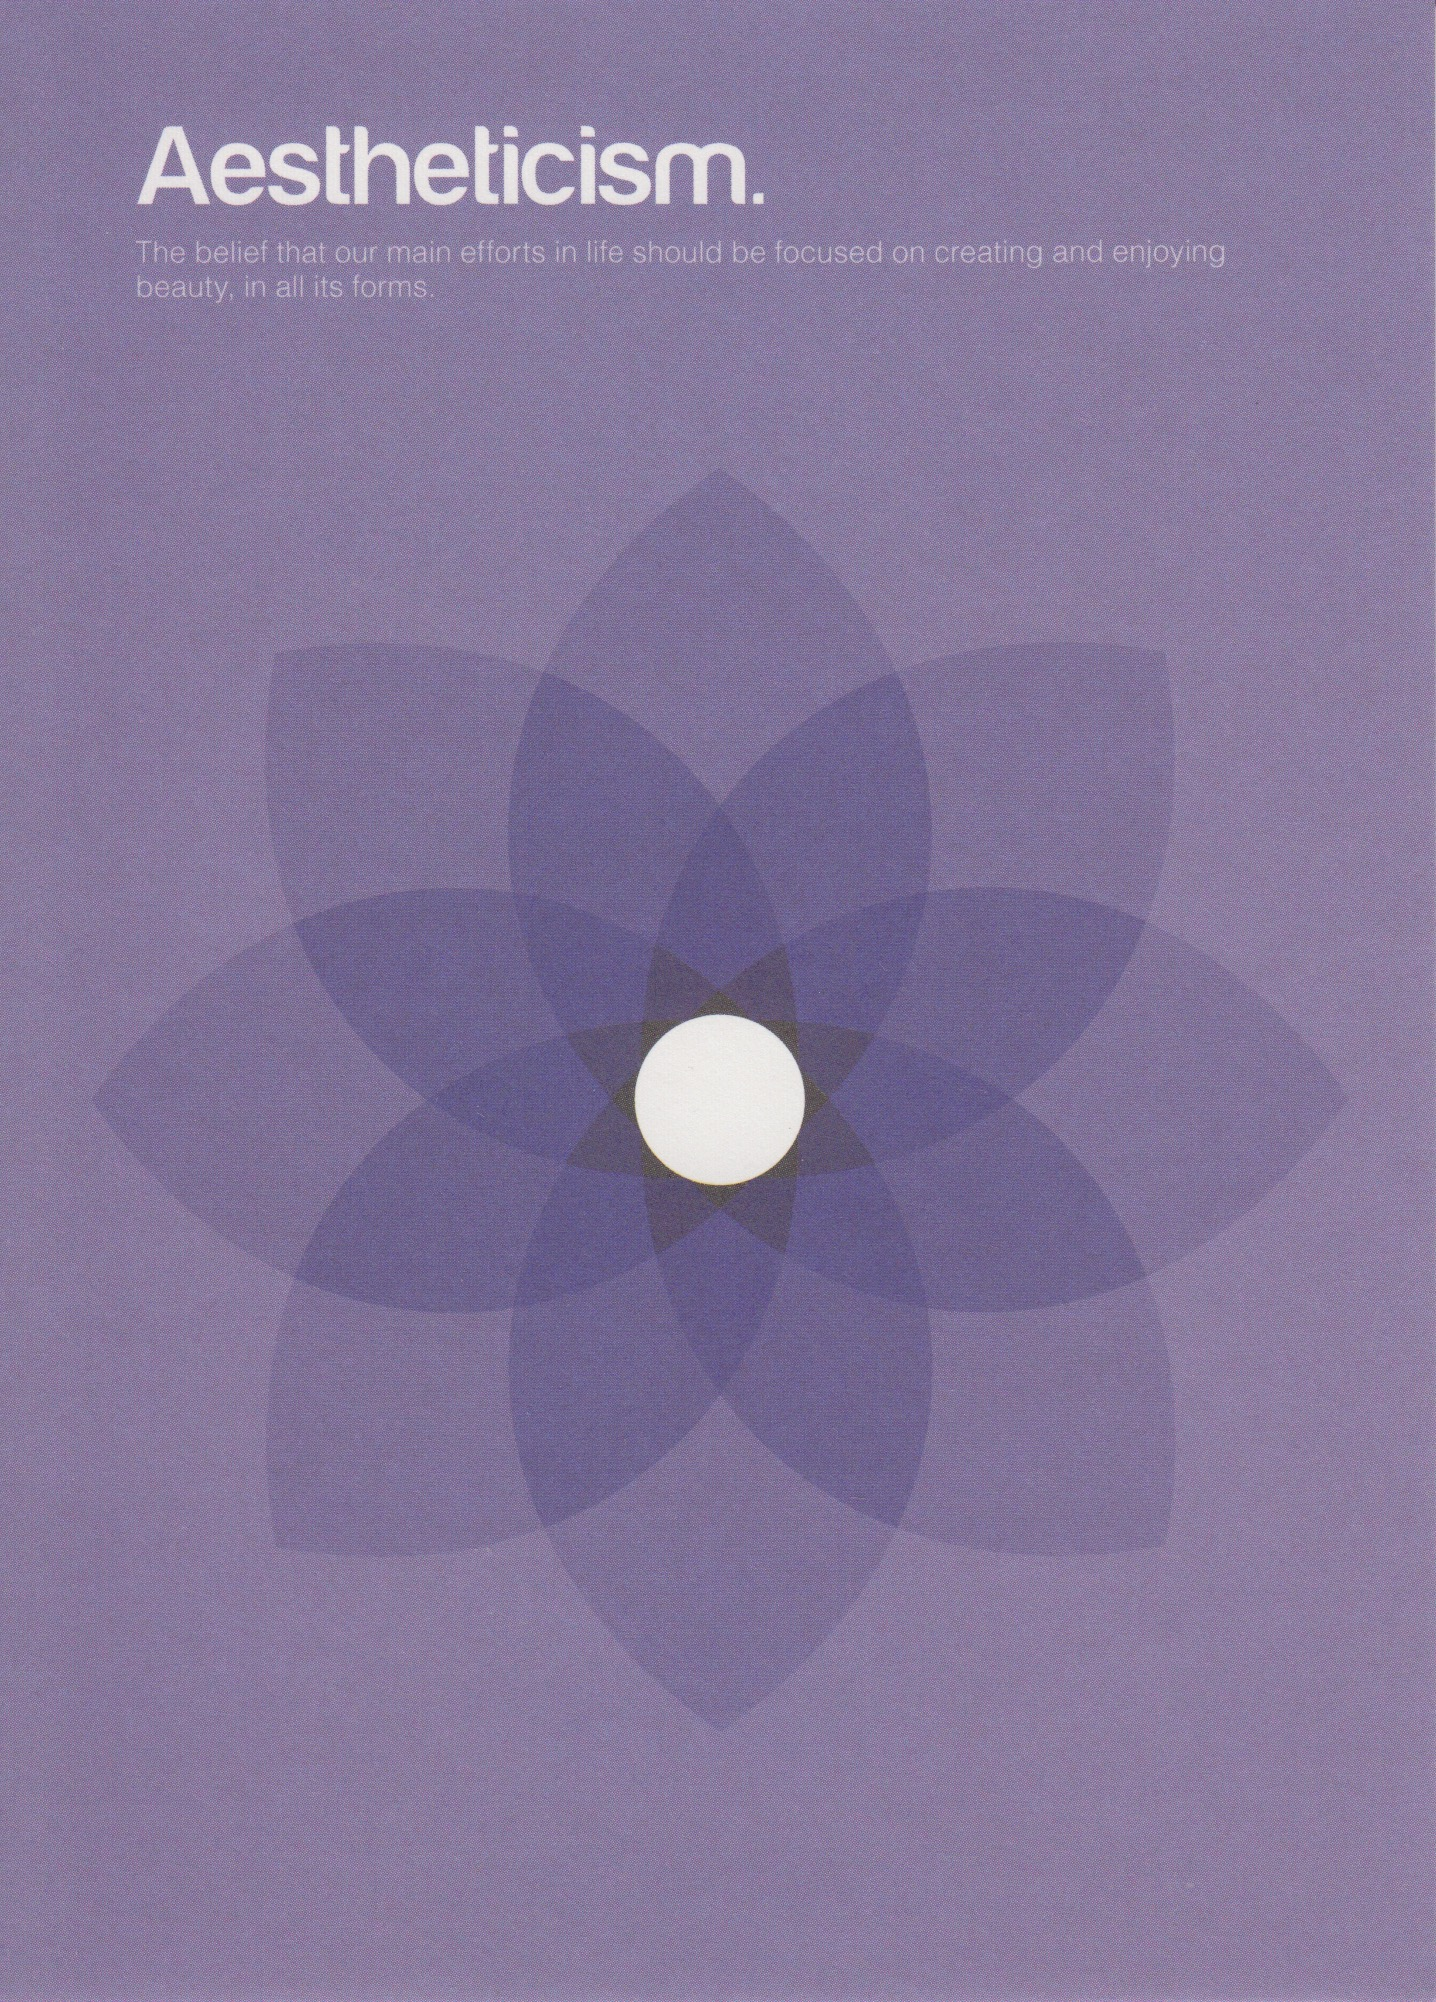 philographics-aestheticism